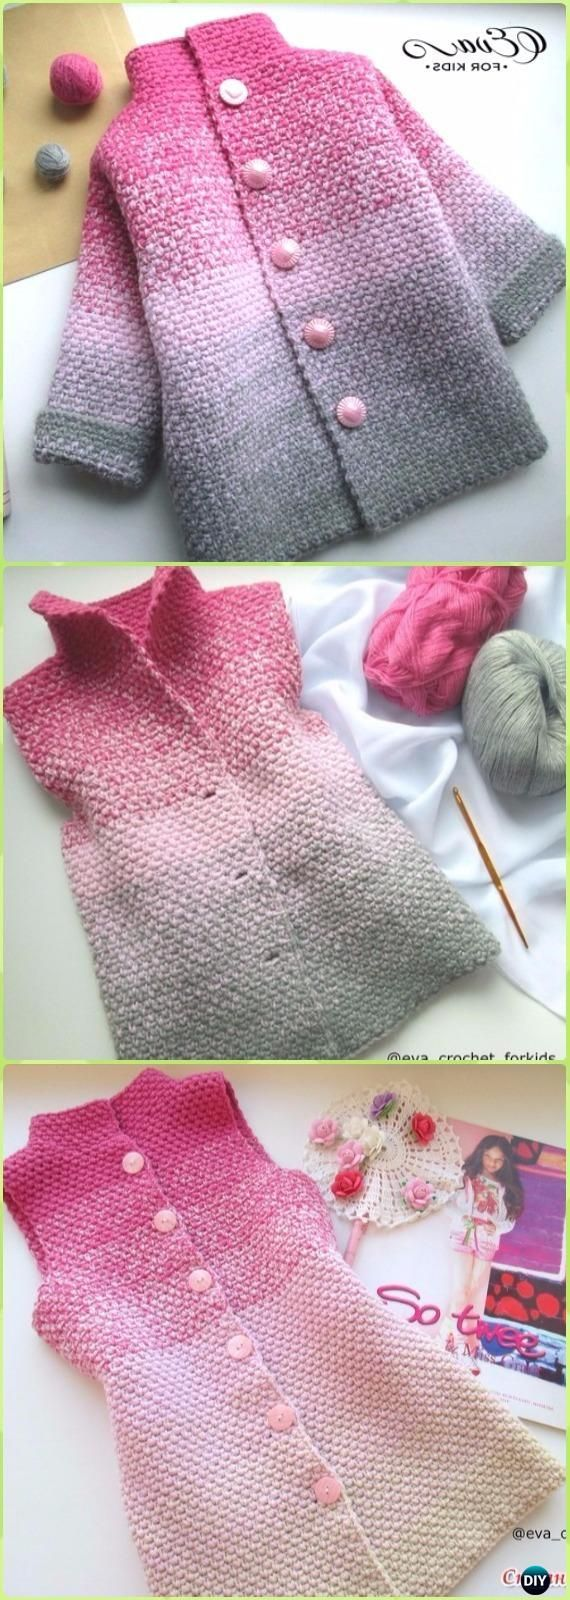 Crochet Glamorous Beauty Ombre Baby Cardigan Free Pattern Video - Crochet Kid's Sweater Coat Free Patterns